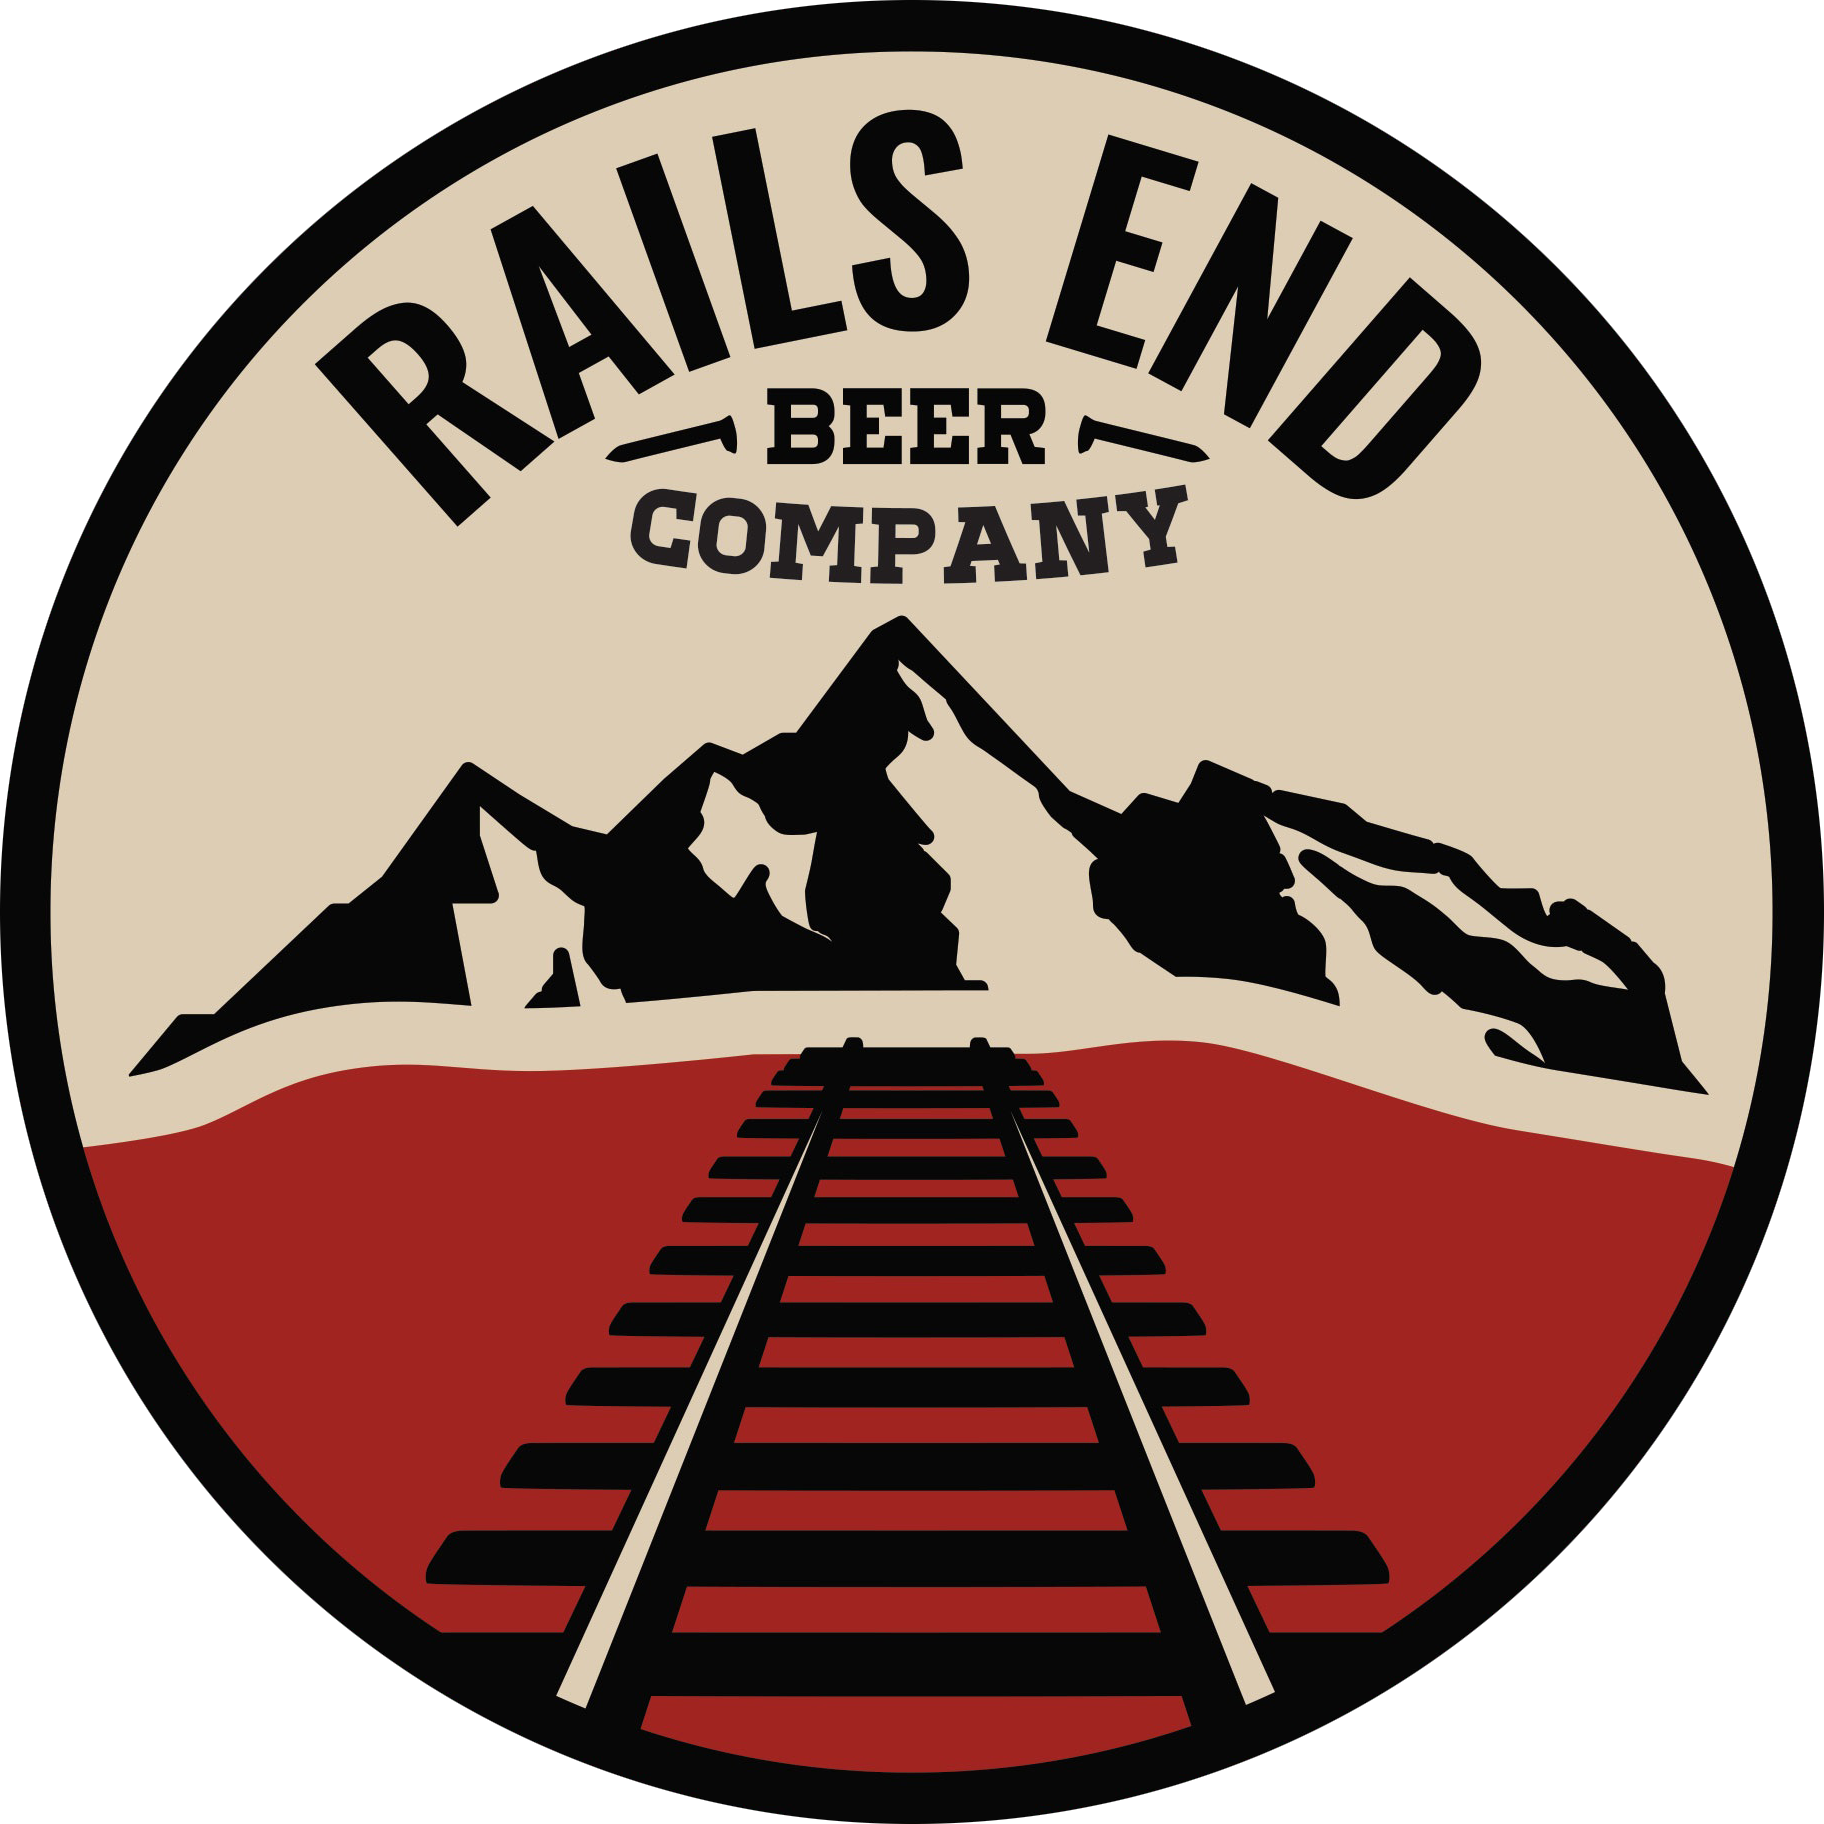 Rails End Beer Company Logo